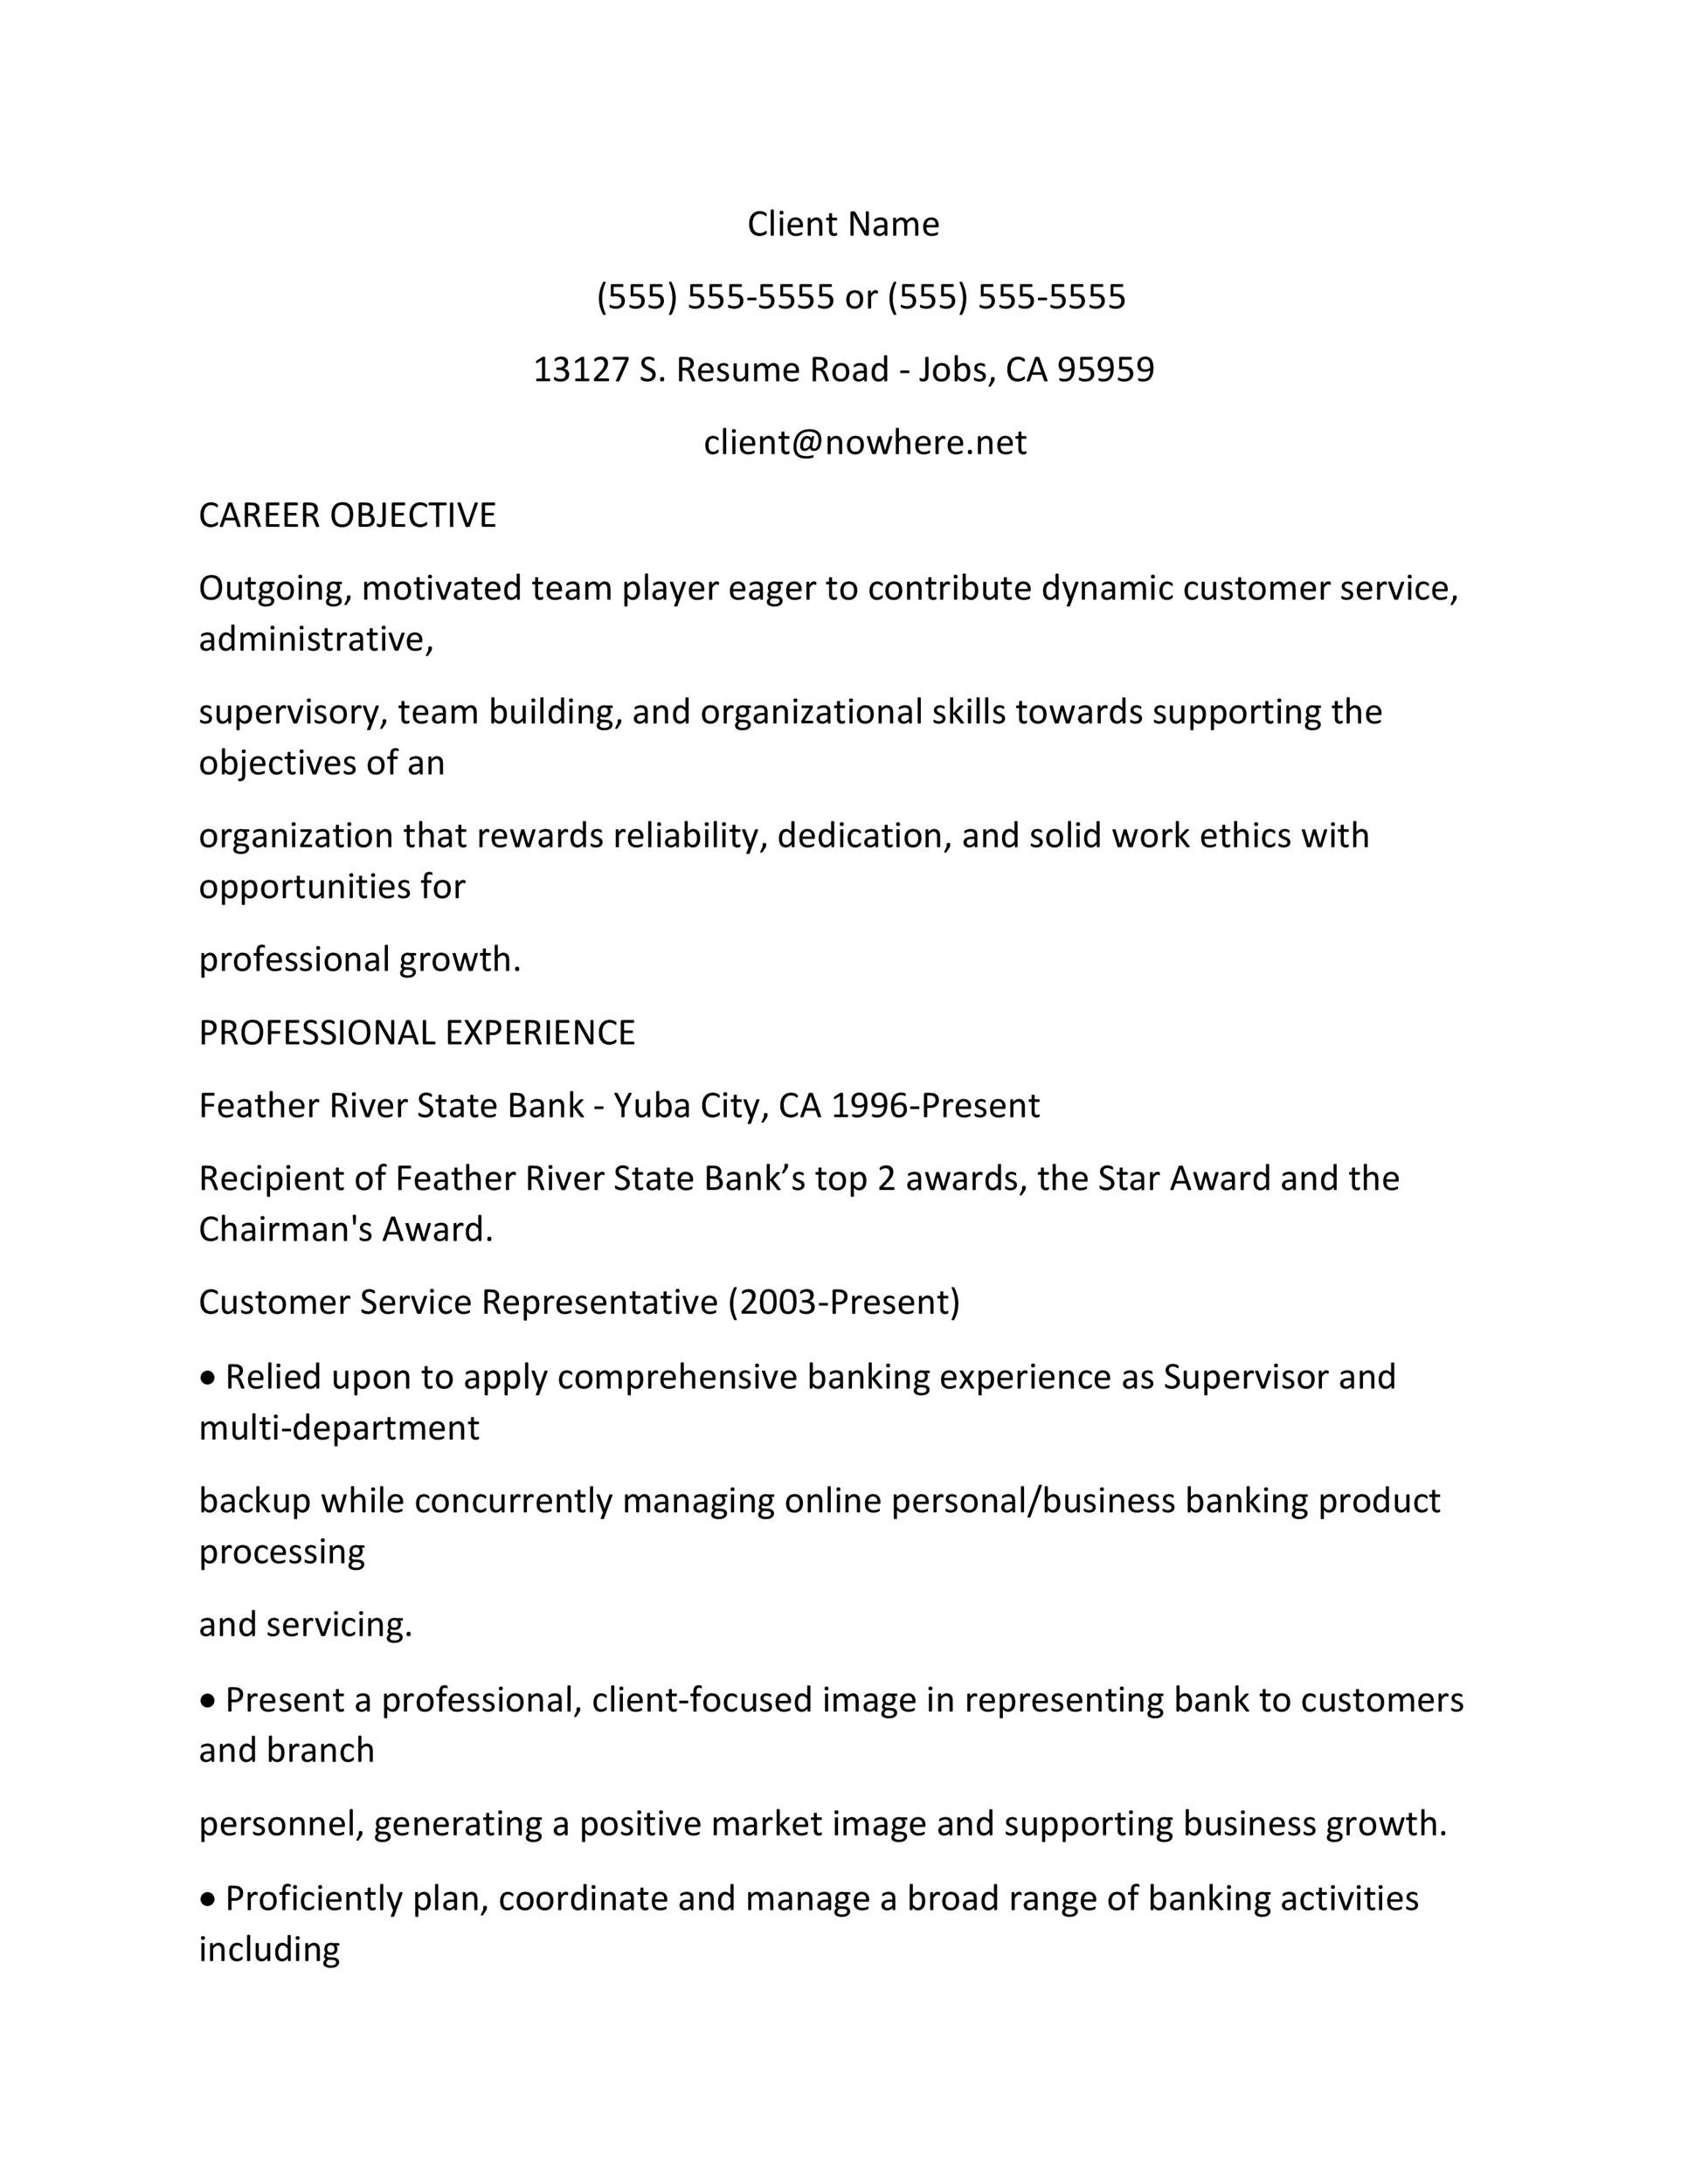 Resume For It Professional With